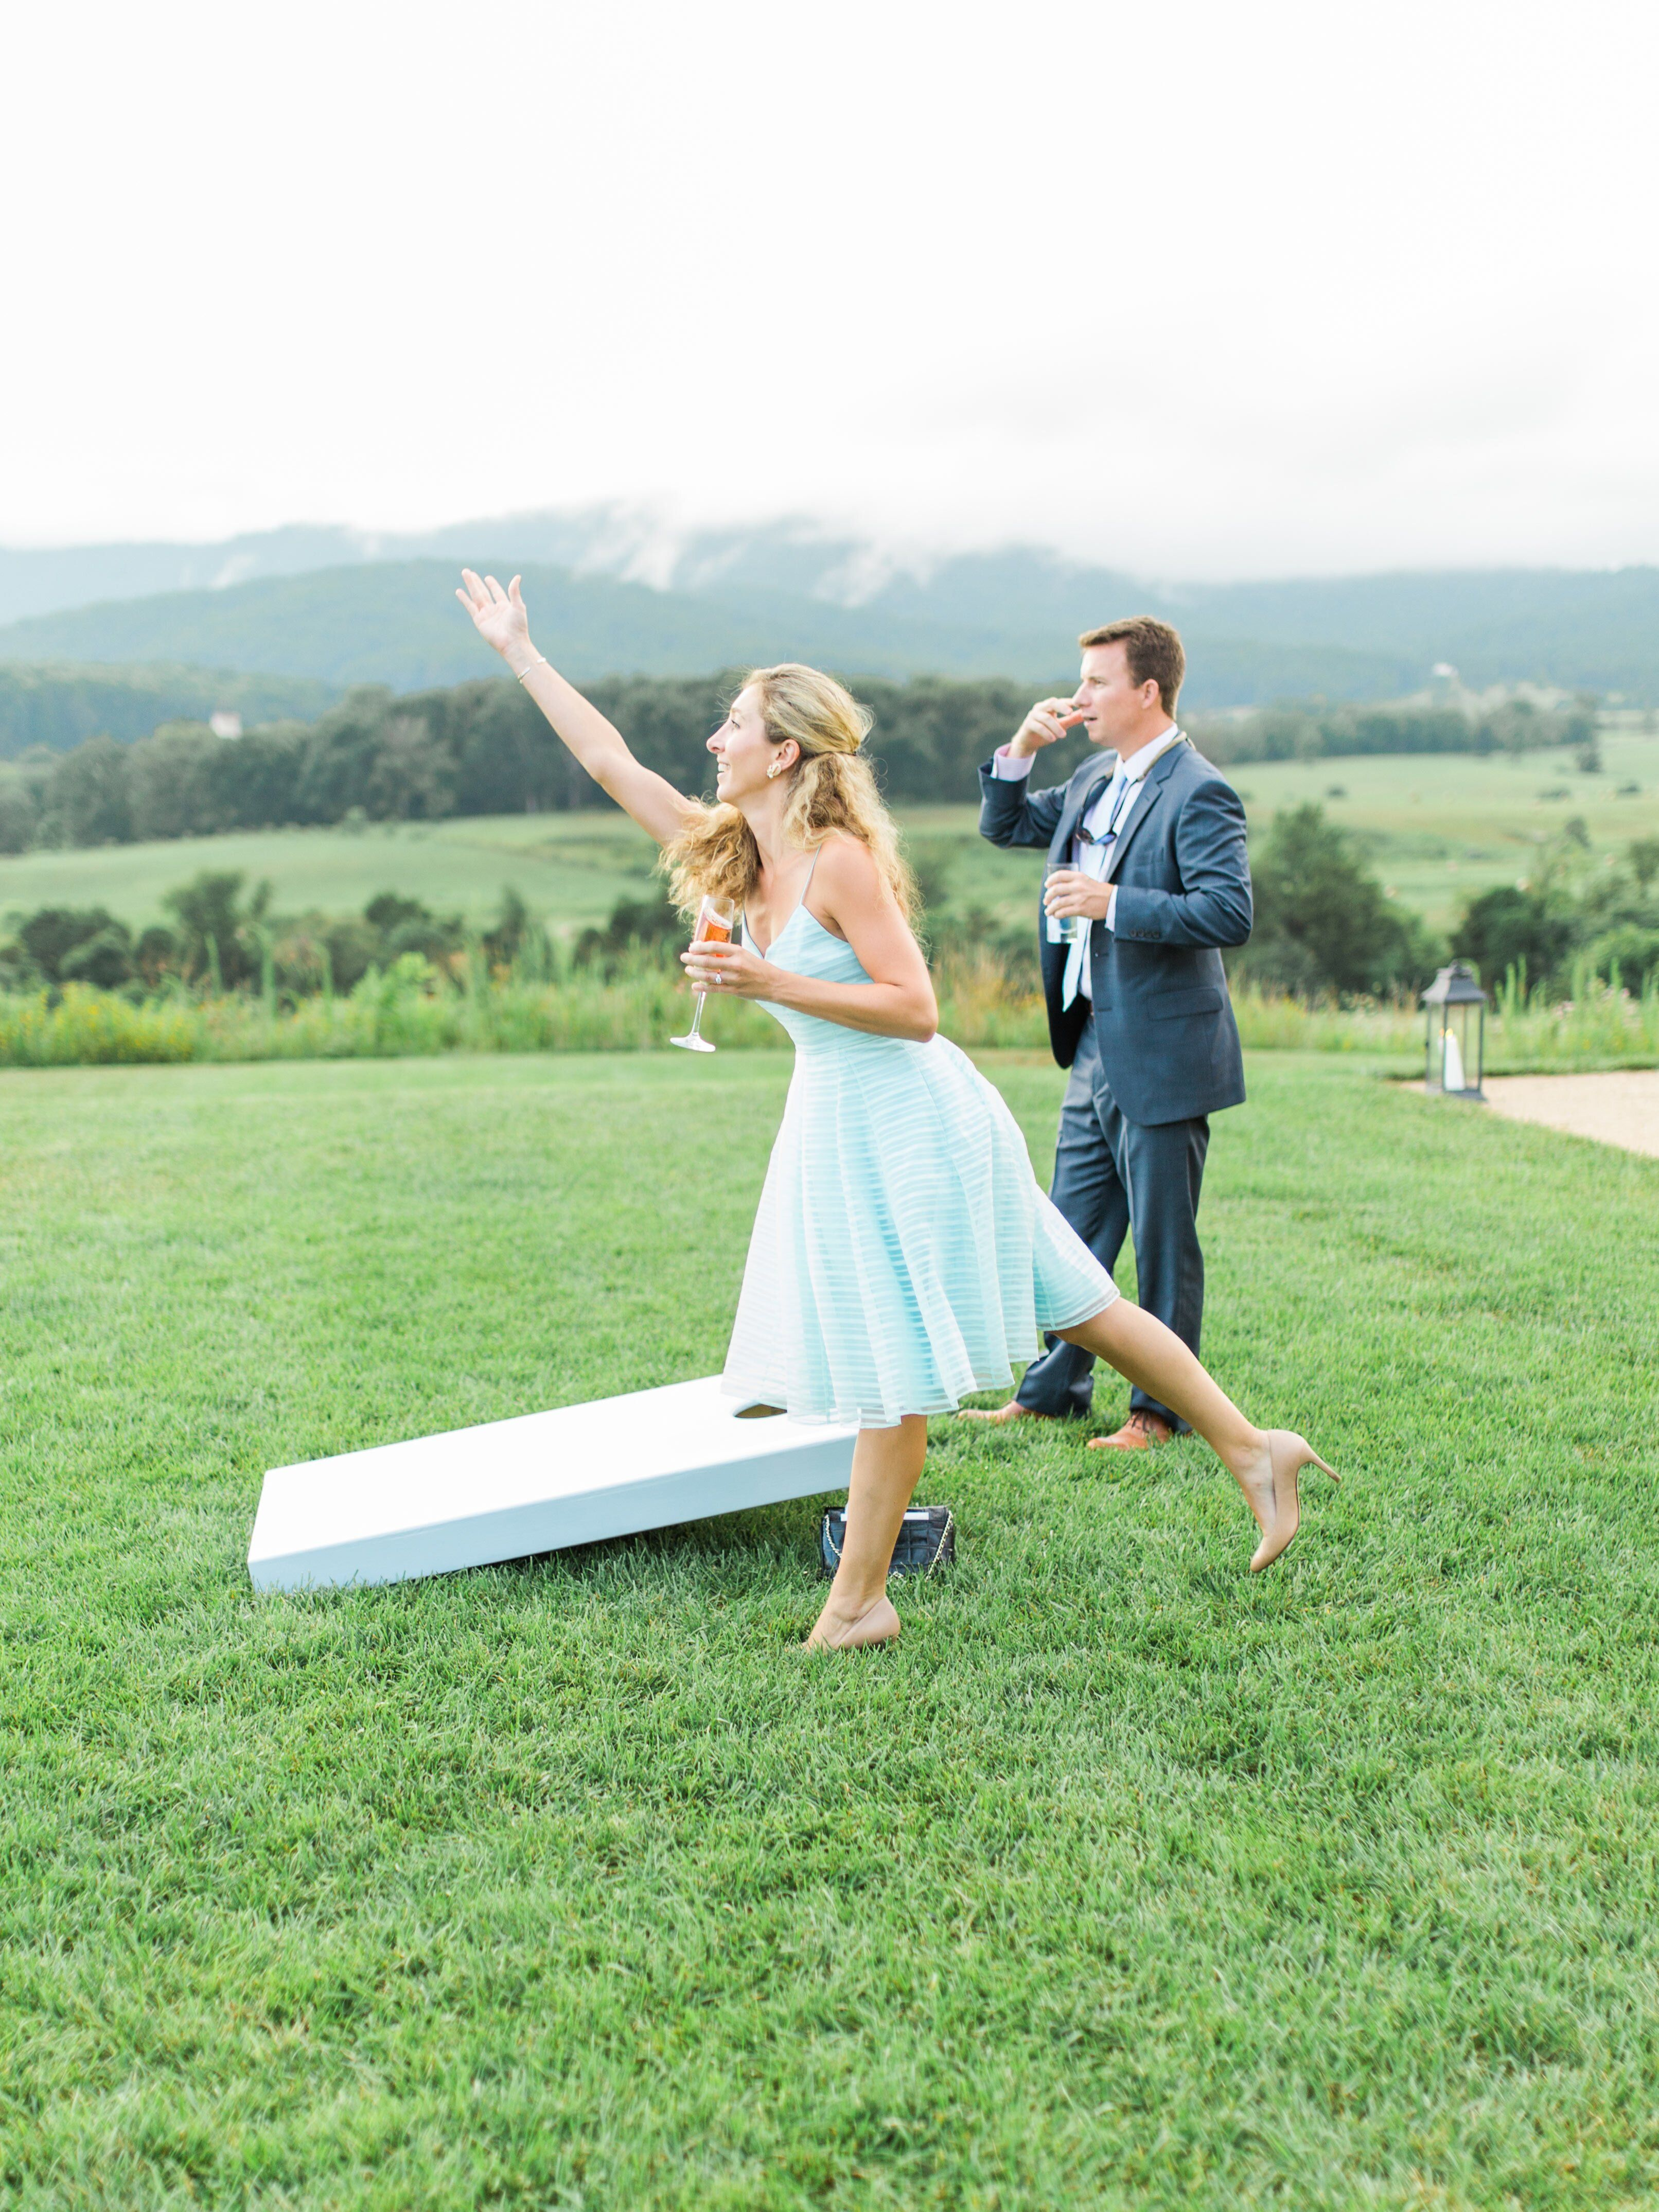 How to Throw the Perfect Backyard Engagement Party